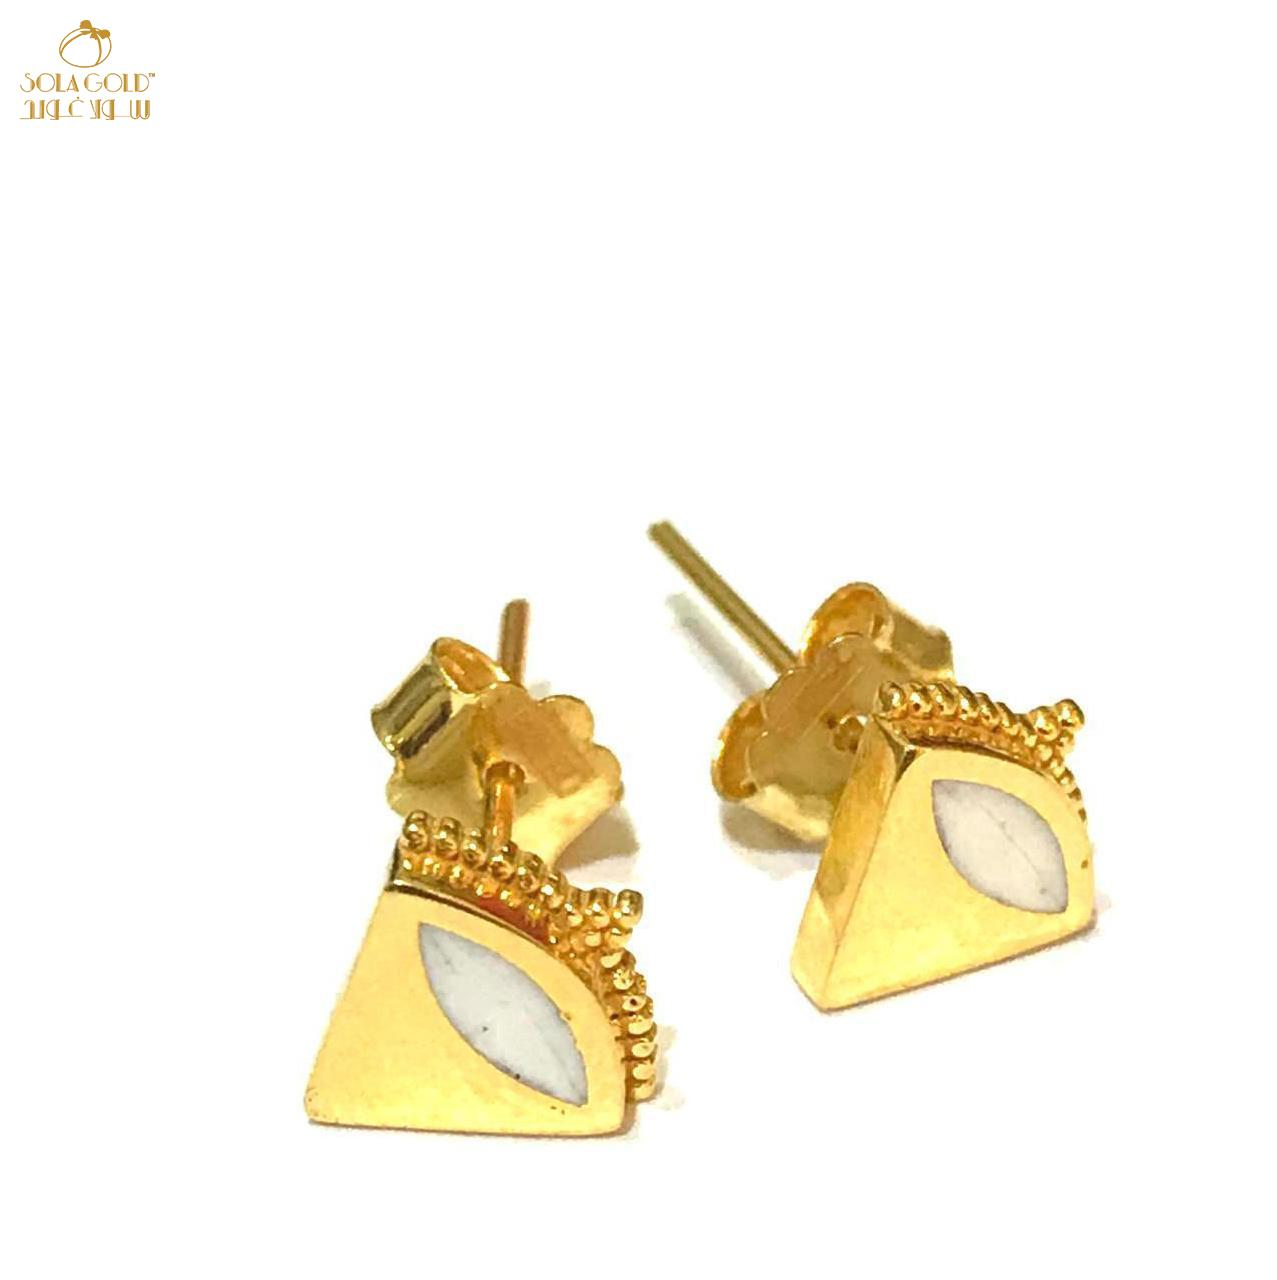 REAL GOLD STUD EARRING 21K